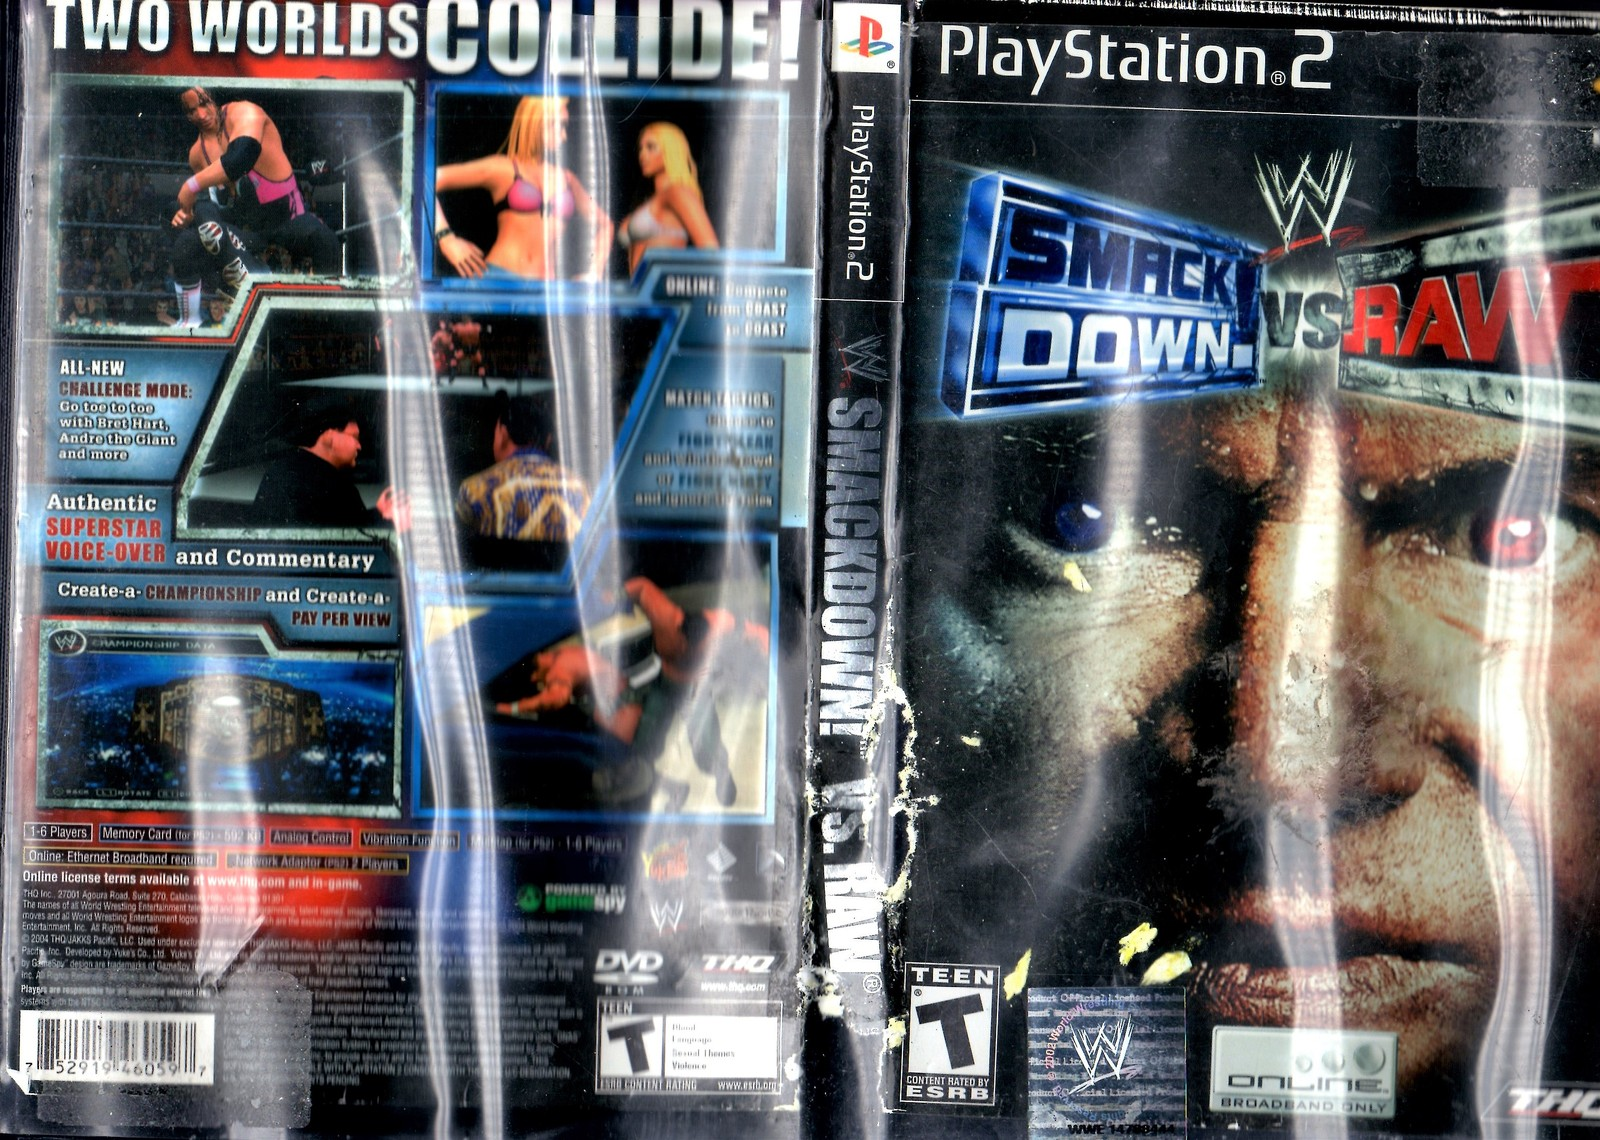 PlayStation 2  - SMACK DOWN vs RAW